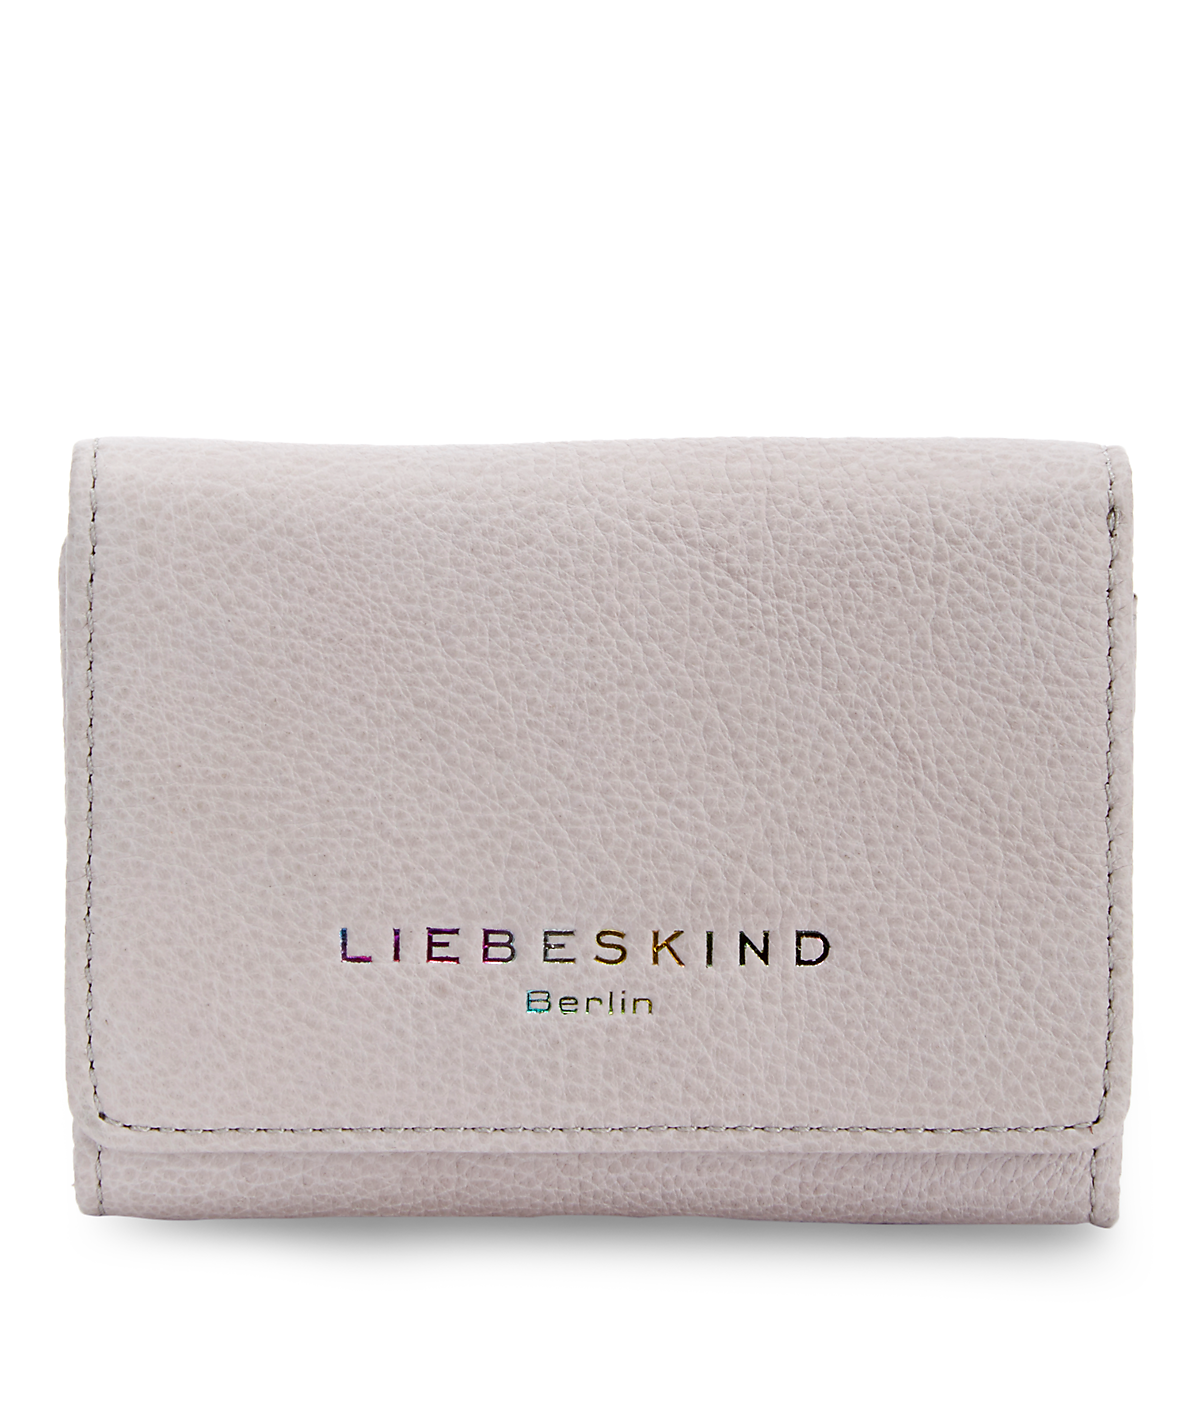 Paulin purse from liebeskind